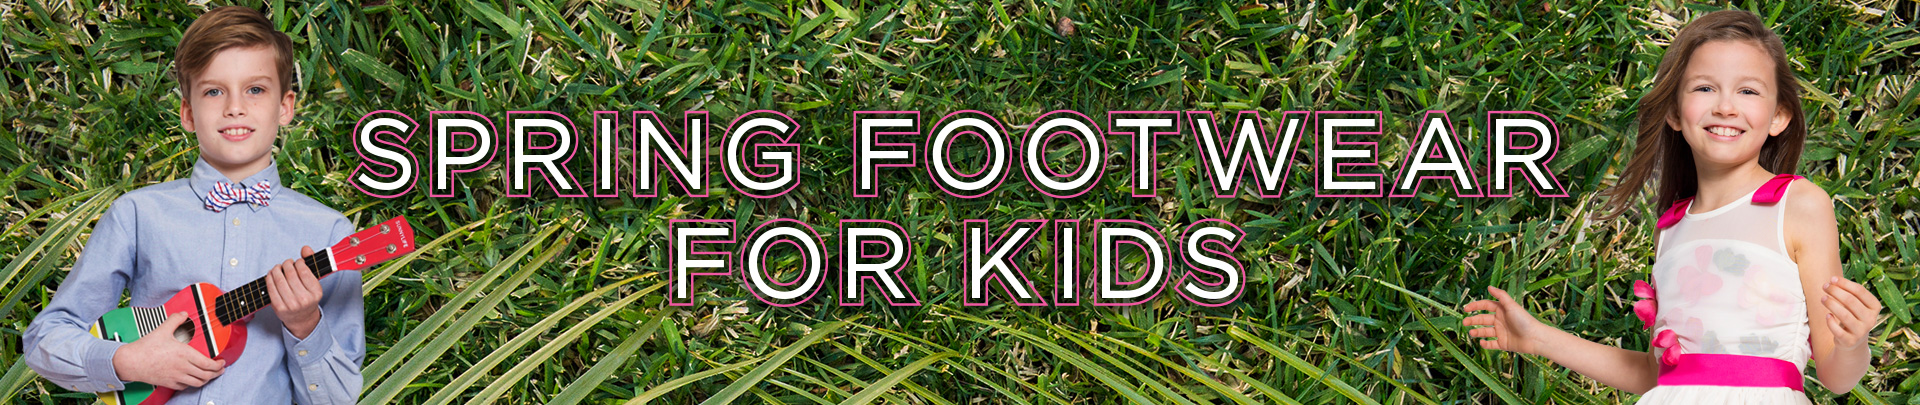 Shop Kids Spring Footwear Look Book